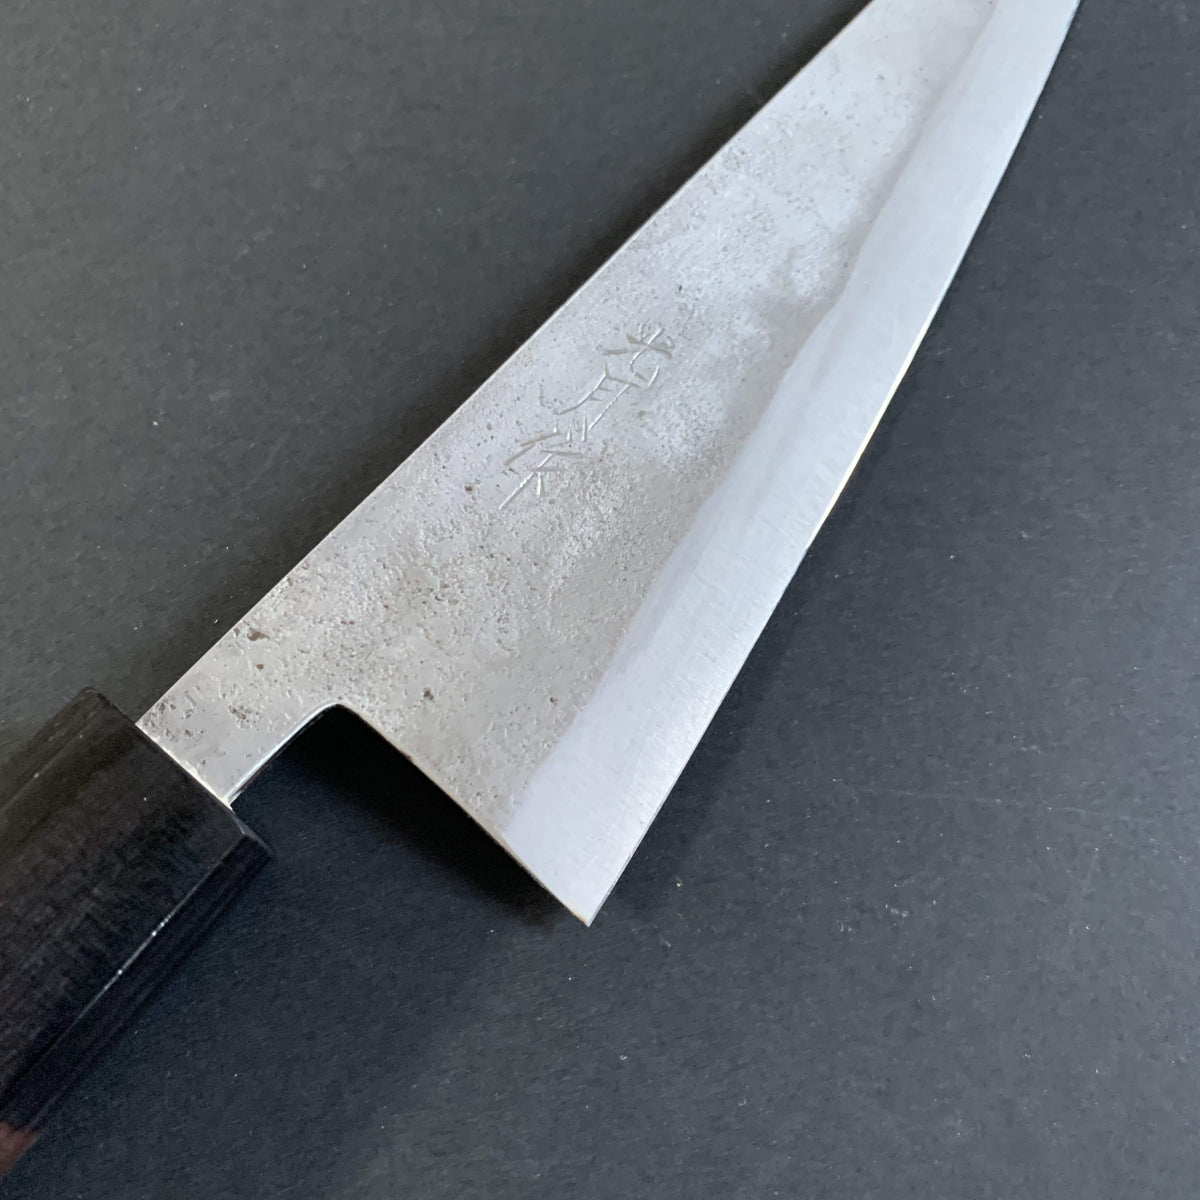 Honesuki knife, Shirogami 1 with stainless steel cladding, nashiji finish - Goko